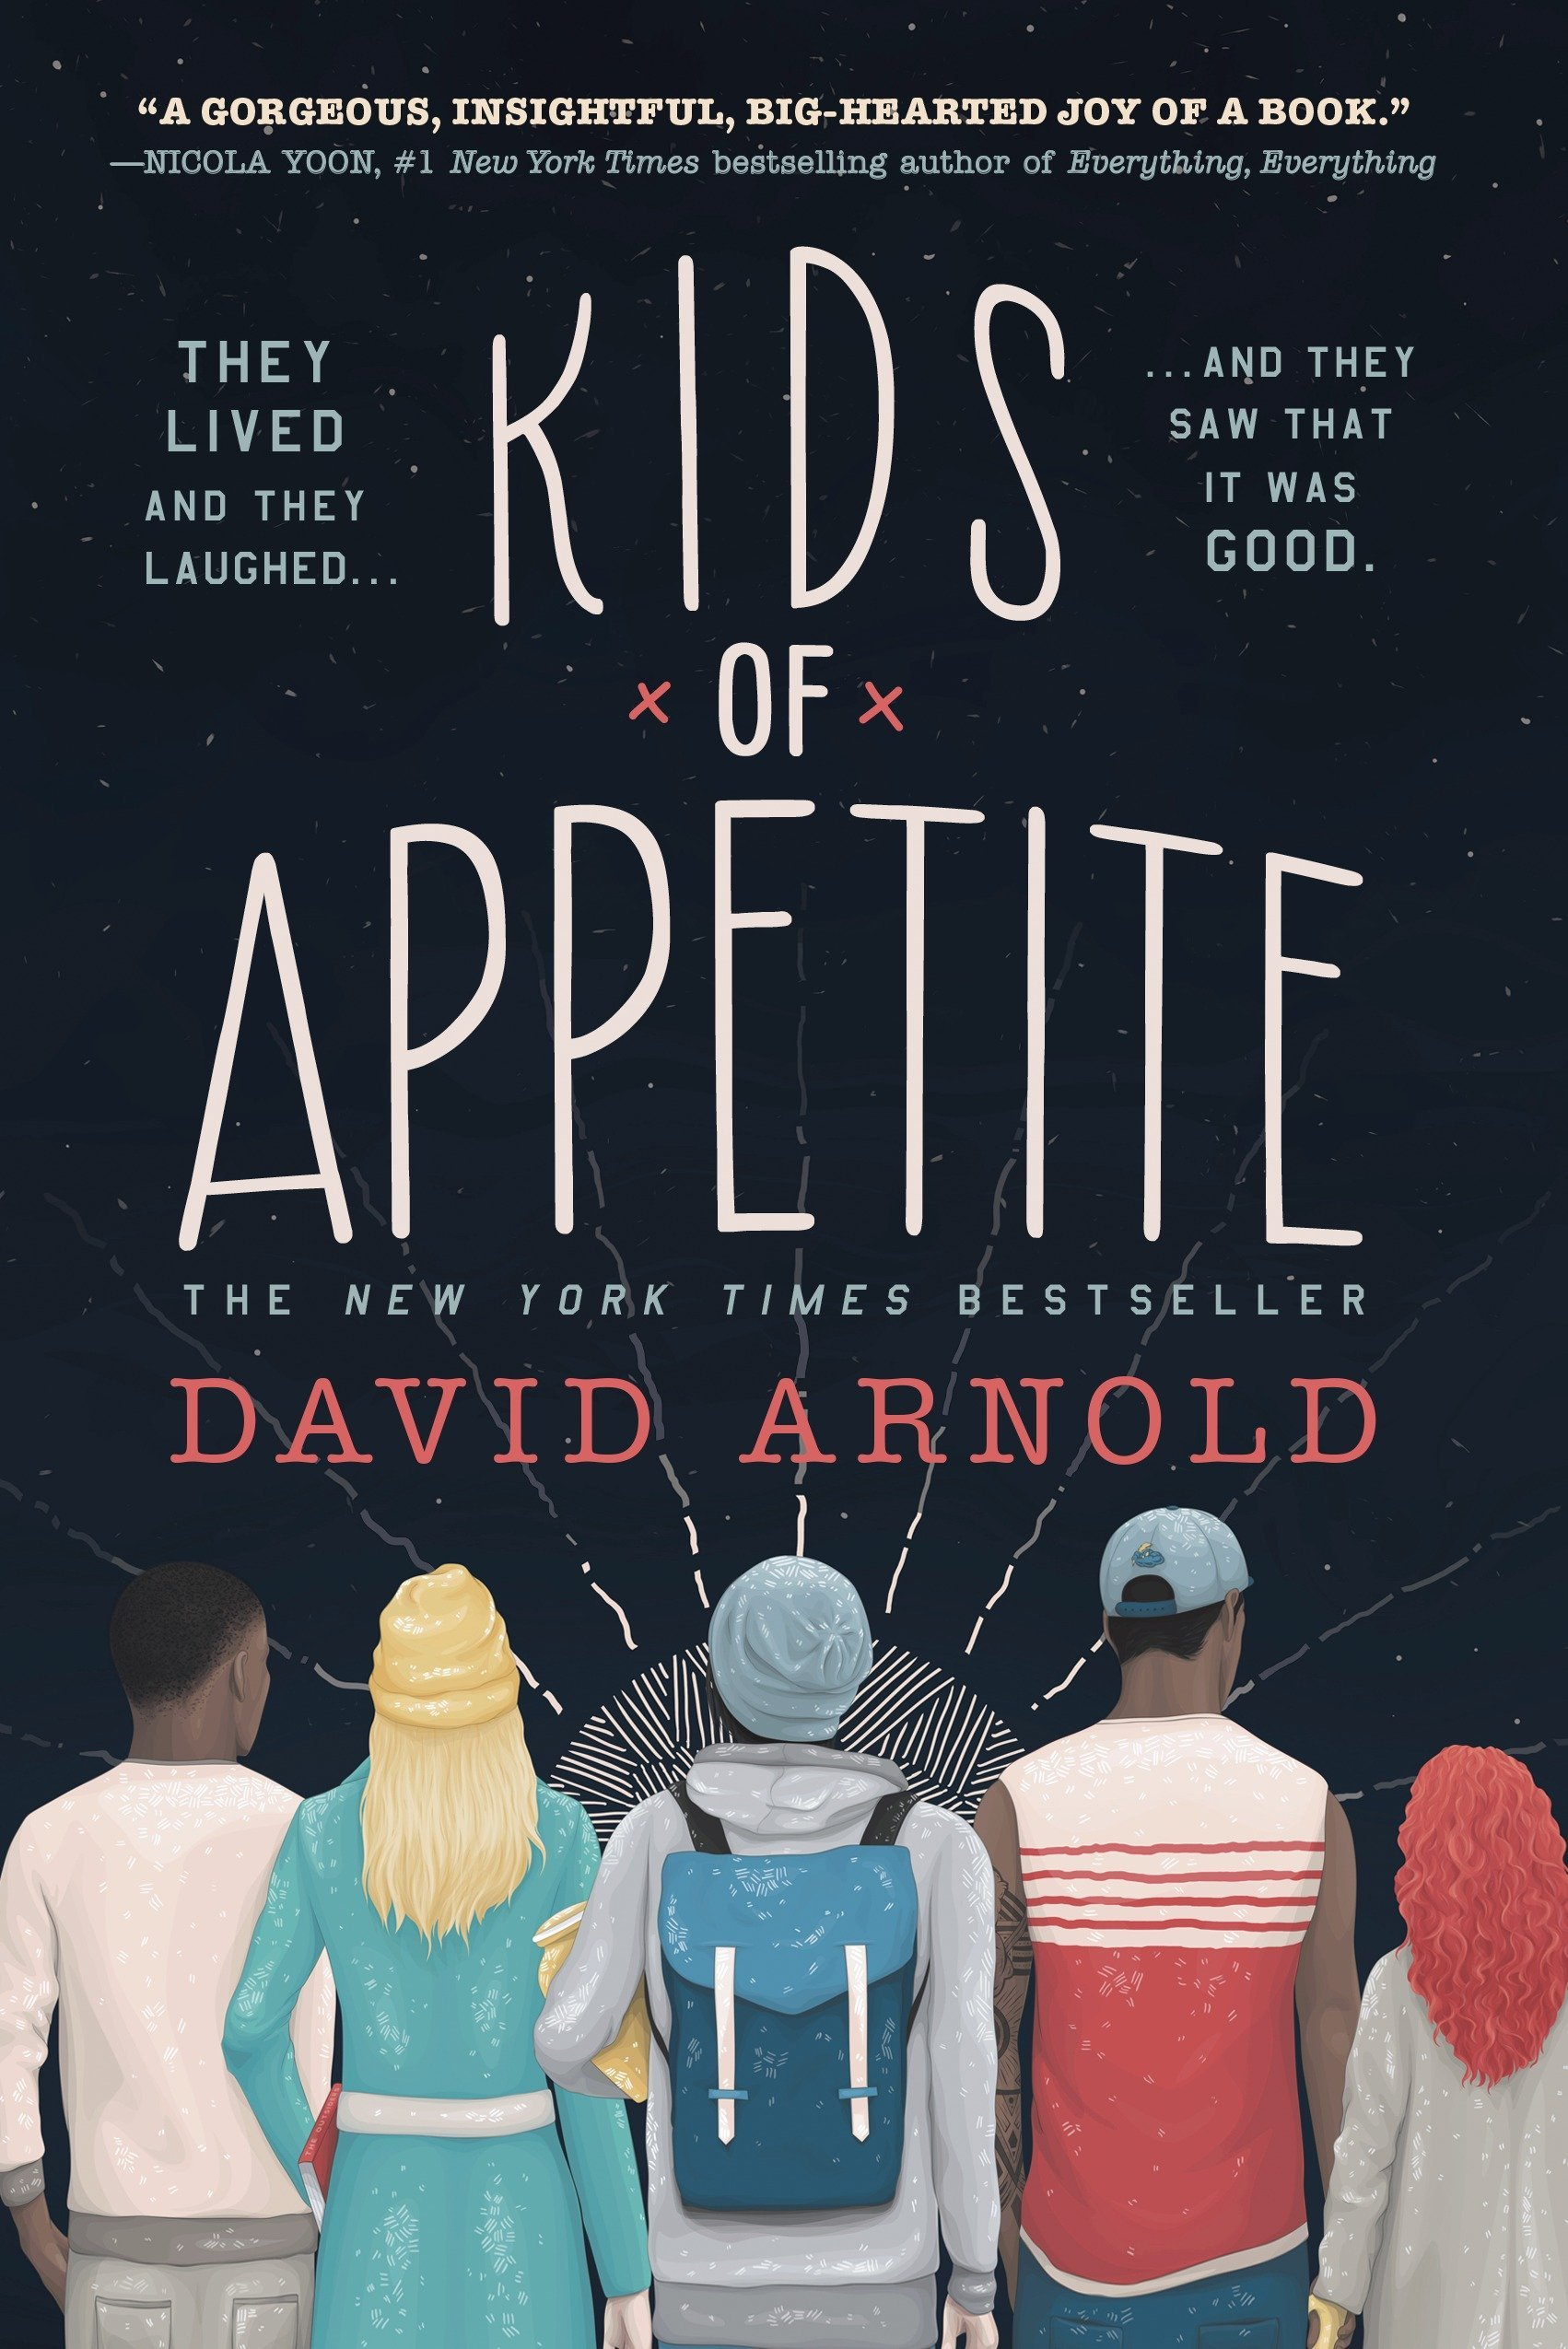 Amazon.com: Kids of Appetite (9780451470782): Arnold, David: Books